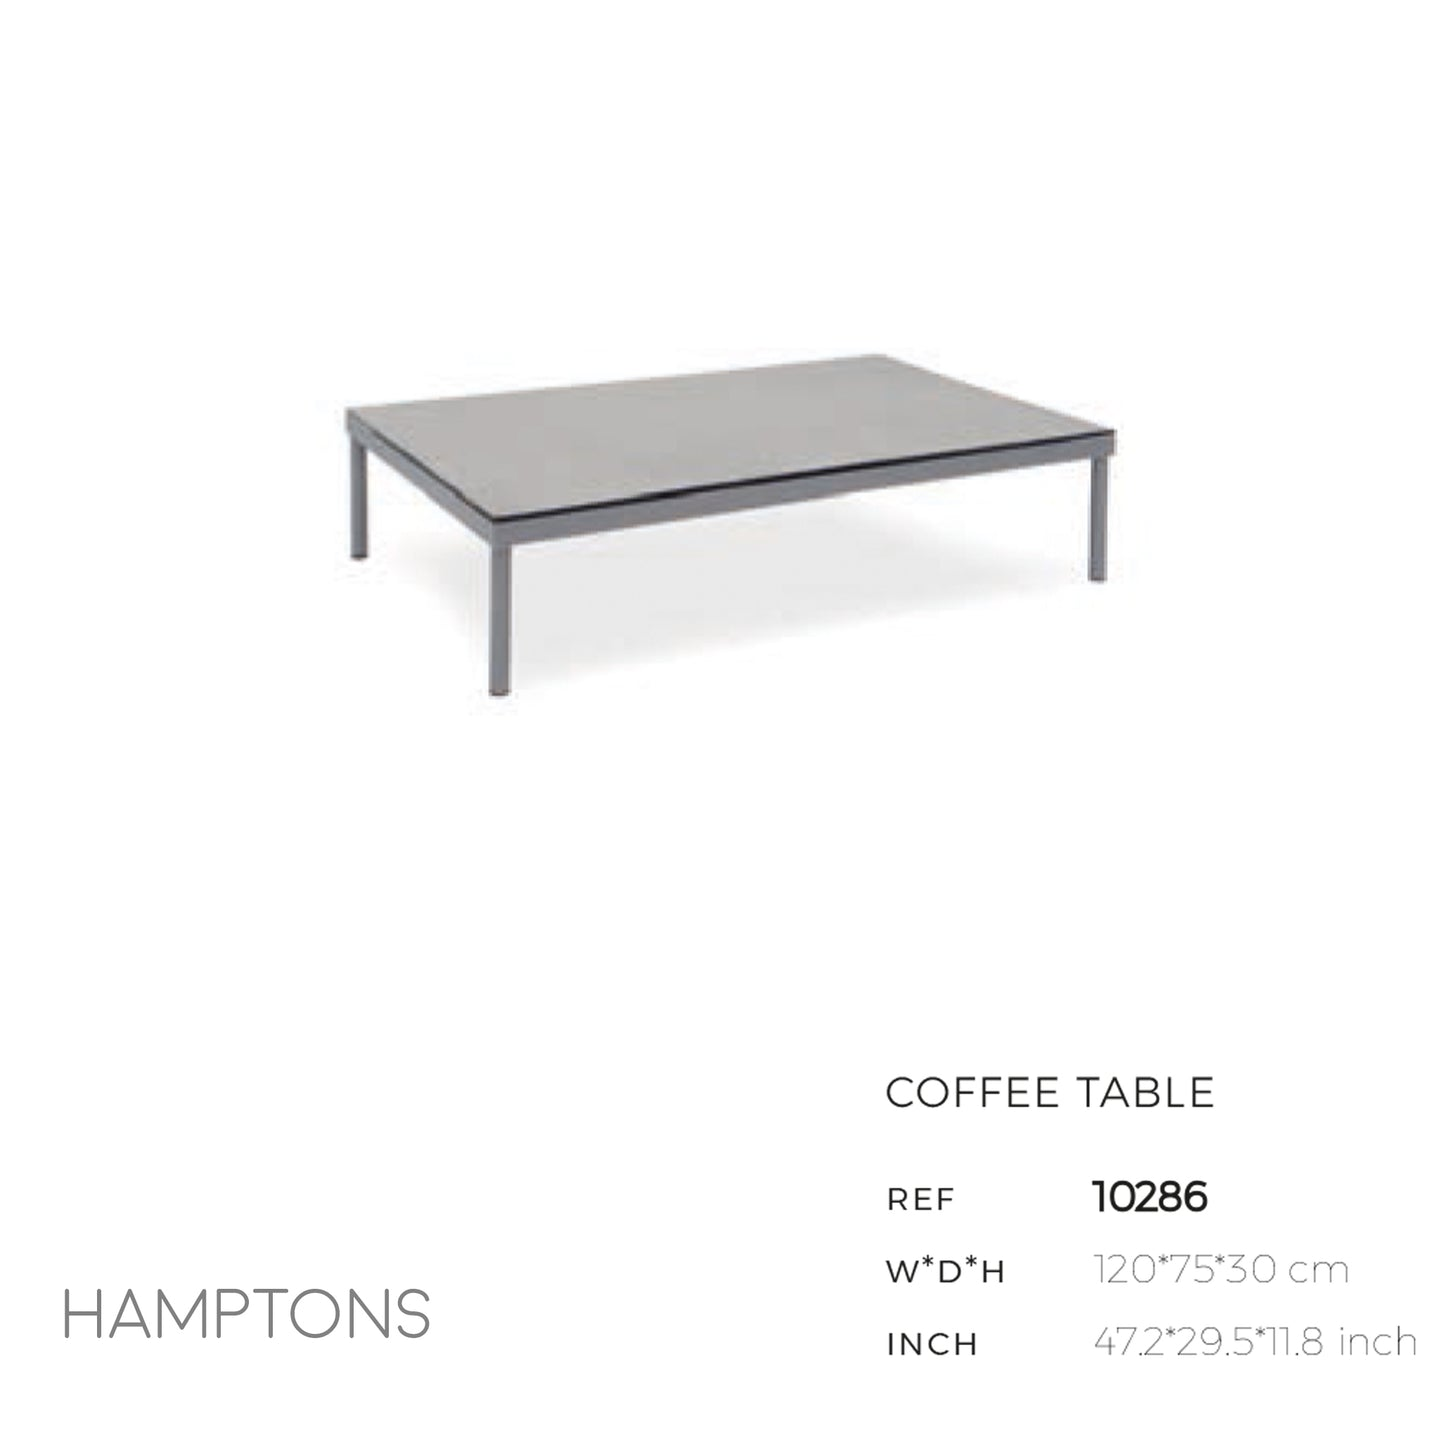 Hamptons Coffee Table